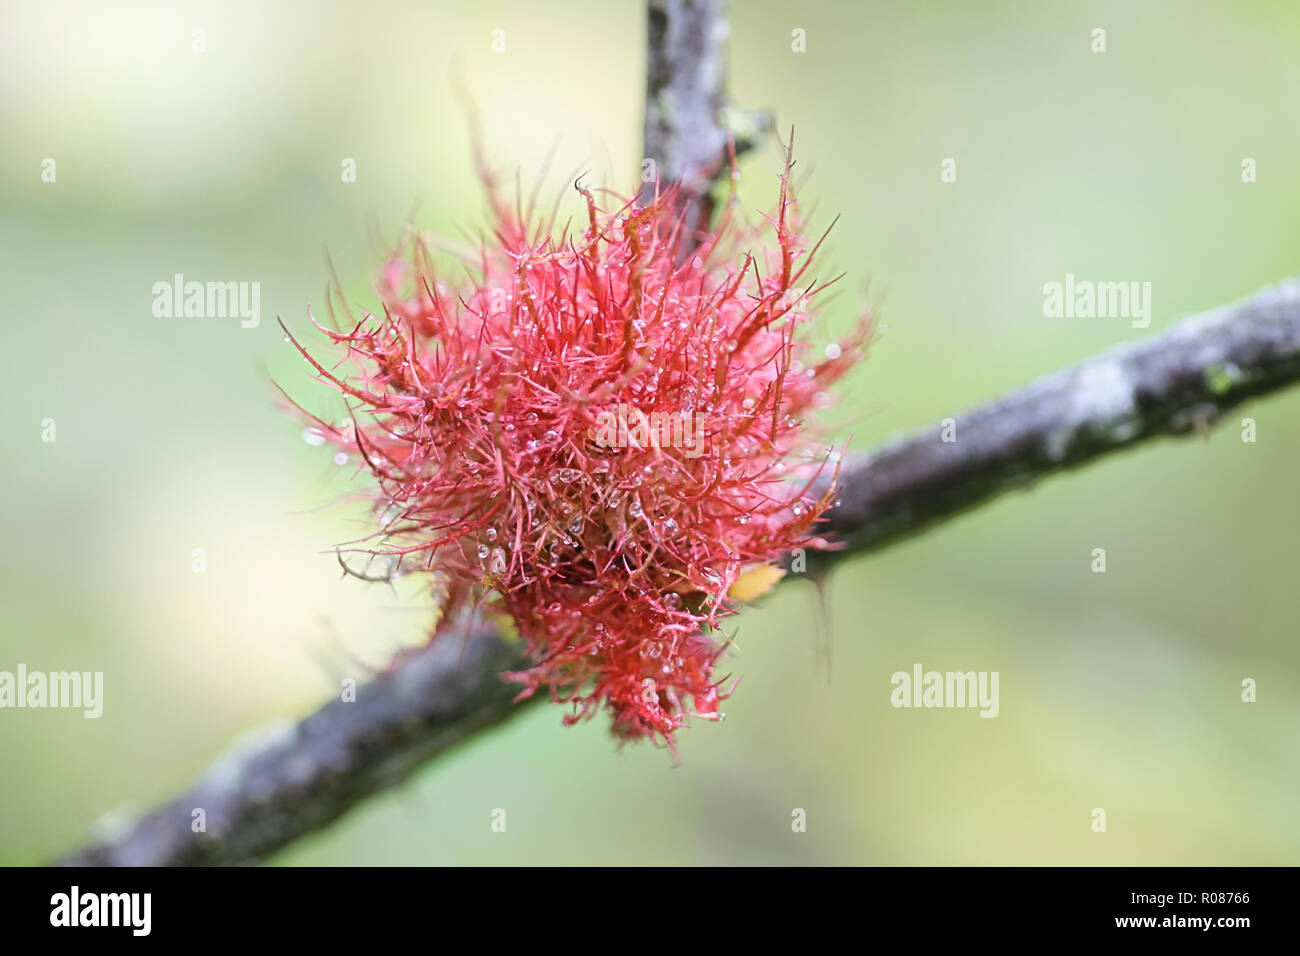 Gall known as the rose bedeguar gall, Robin's pincushion, or moss gall is caused by a hymenopteran gall wasp, Diplolepis rosae - Stock Image